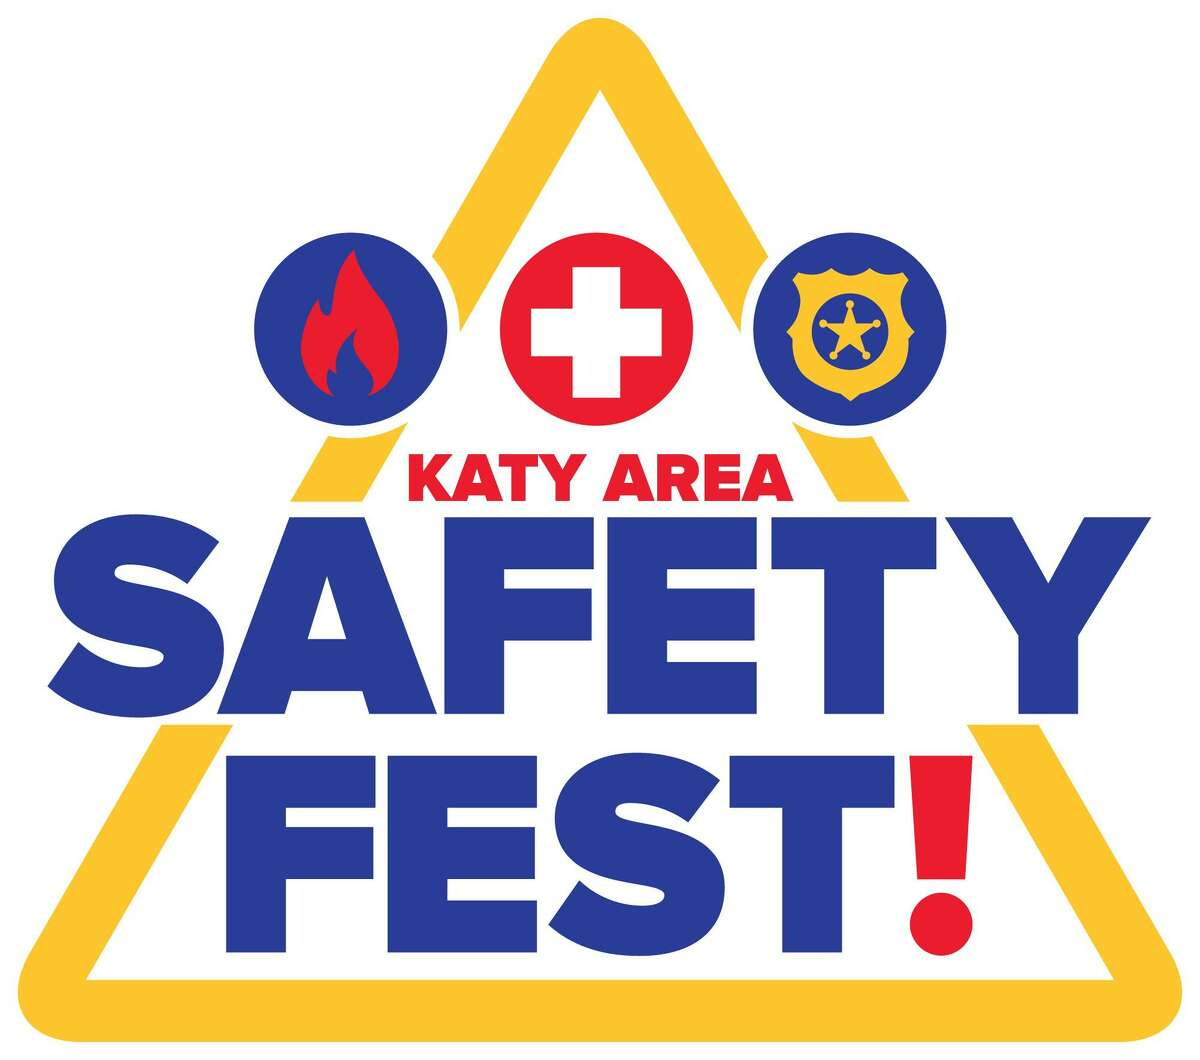 This year's Katy Area Safety Fest will be held virtually.